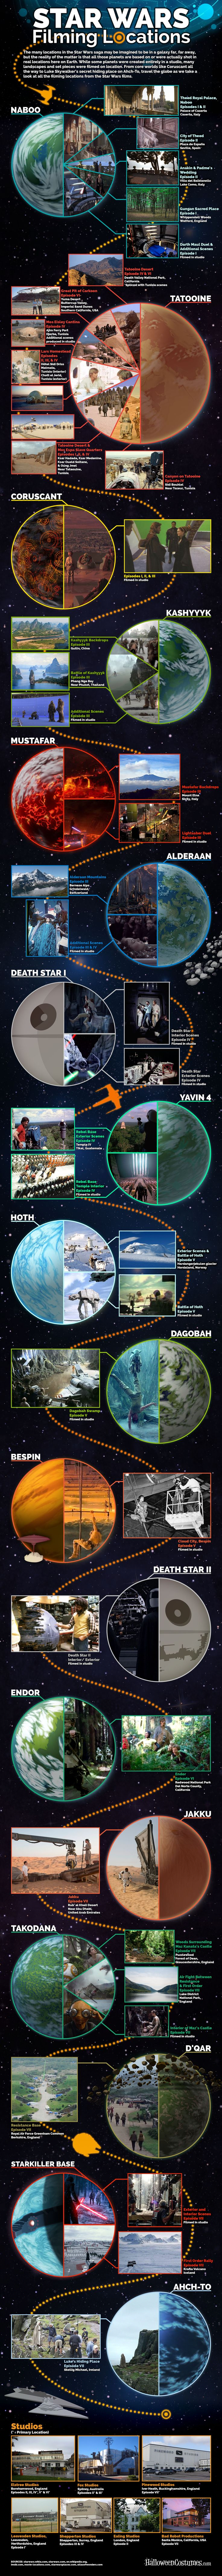 A Galaxy Here on Earth: Star Wars Filming Locations [Infographic]